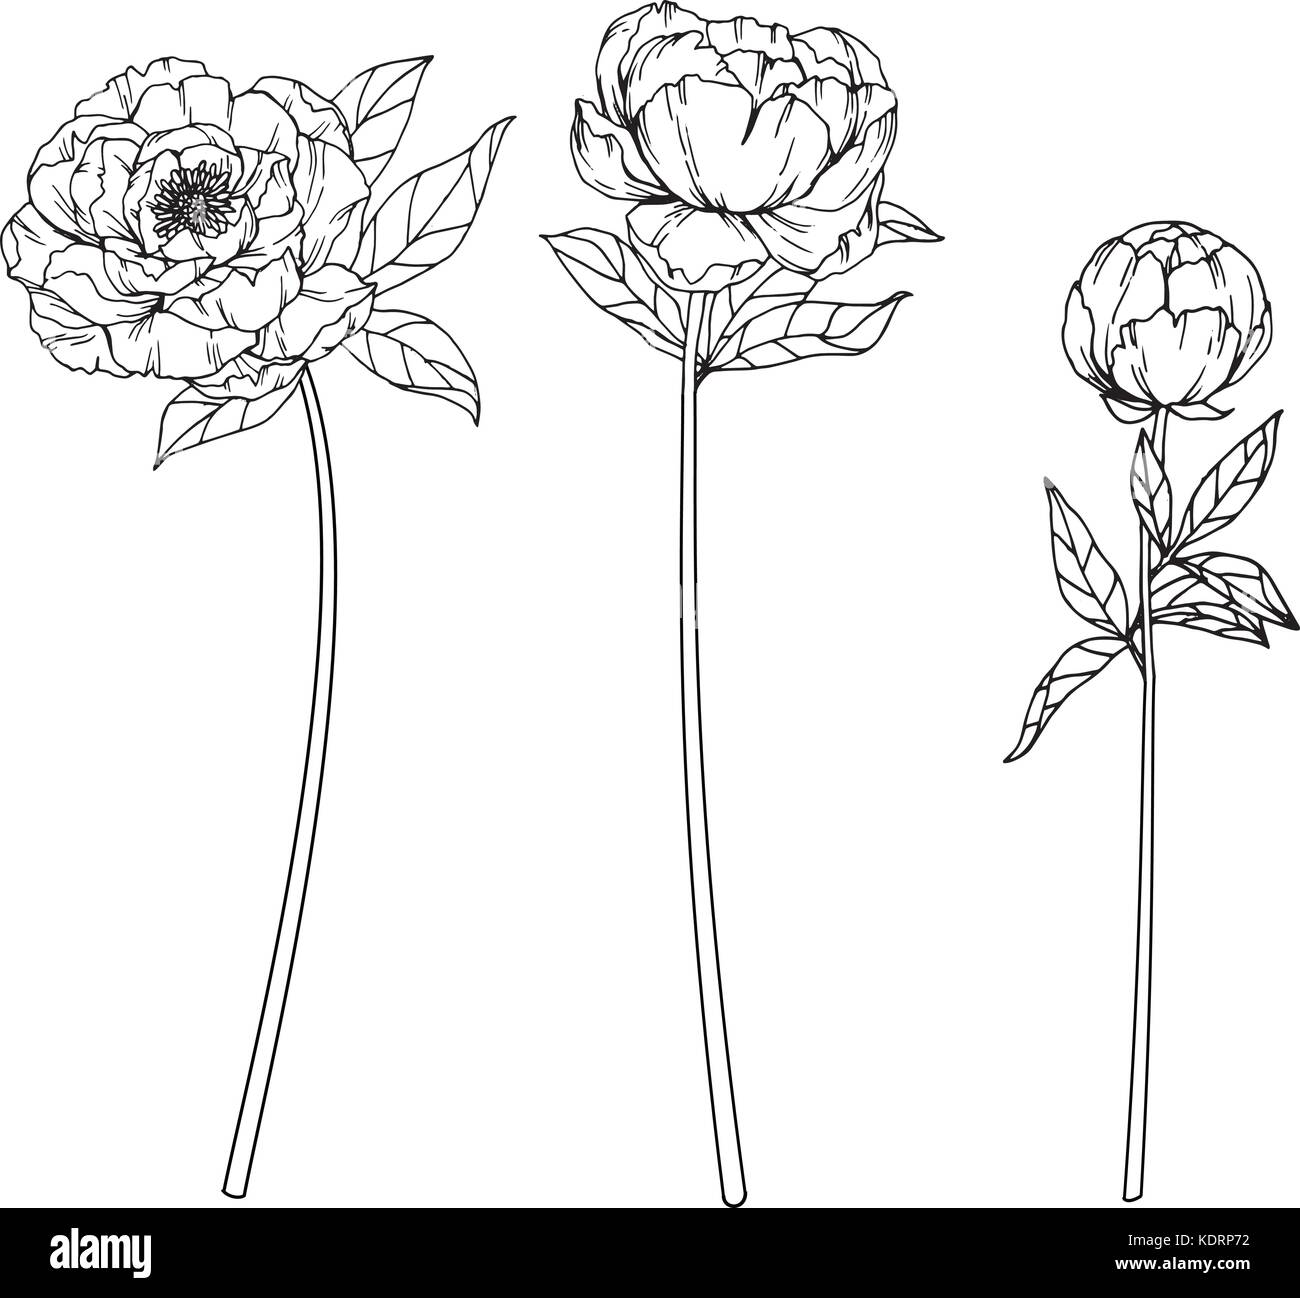 Peony Flower Drawing Illustration Black And White With Line Art